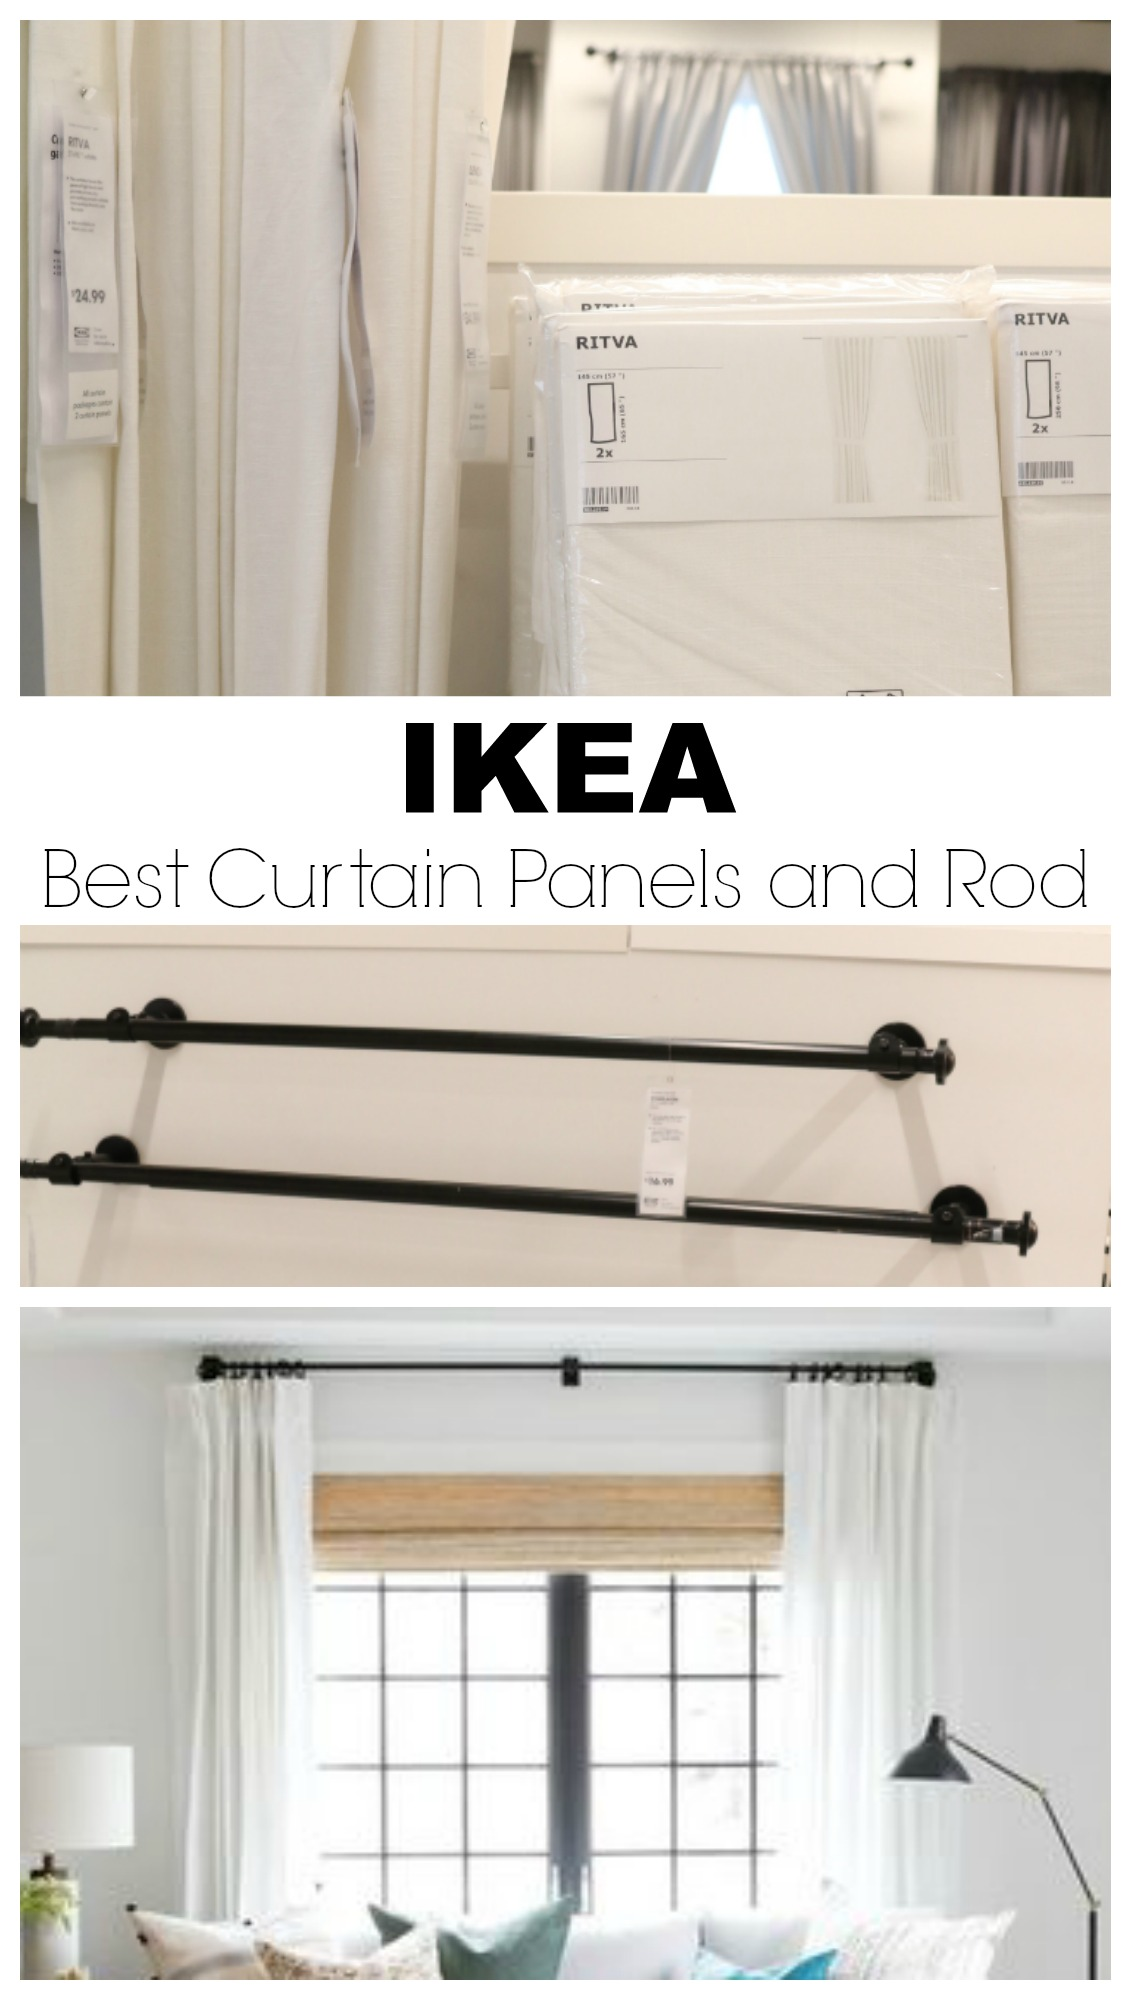 17 Images About Build Ikea Panel Curtain On Pinterest: IKEA Finds- What I Bought And What I Love